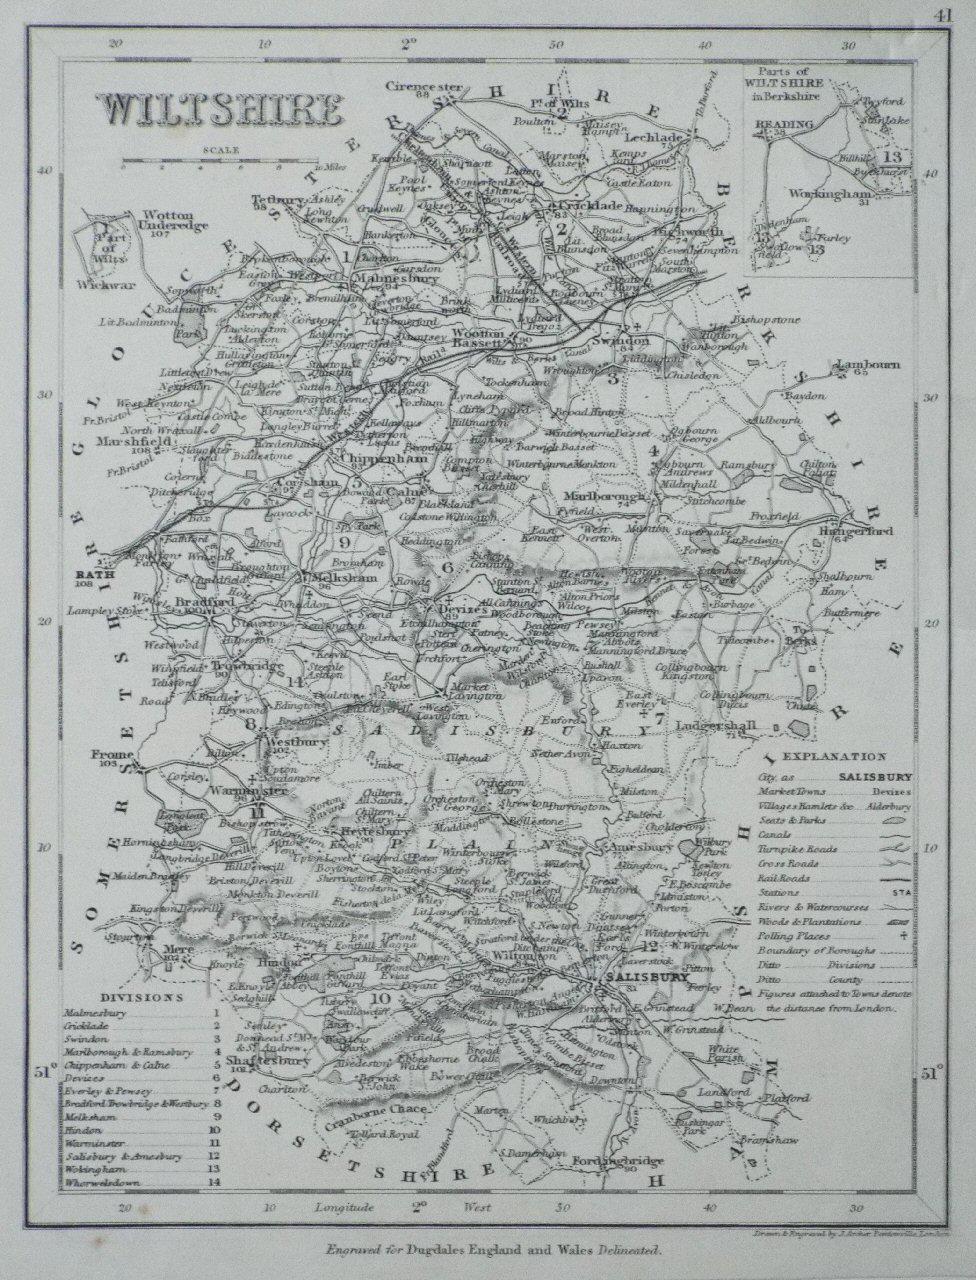 Map of Wiltshire - Archer